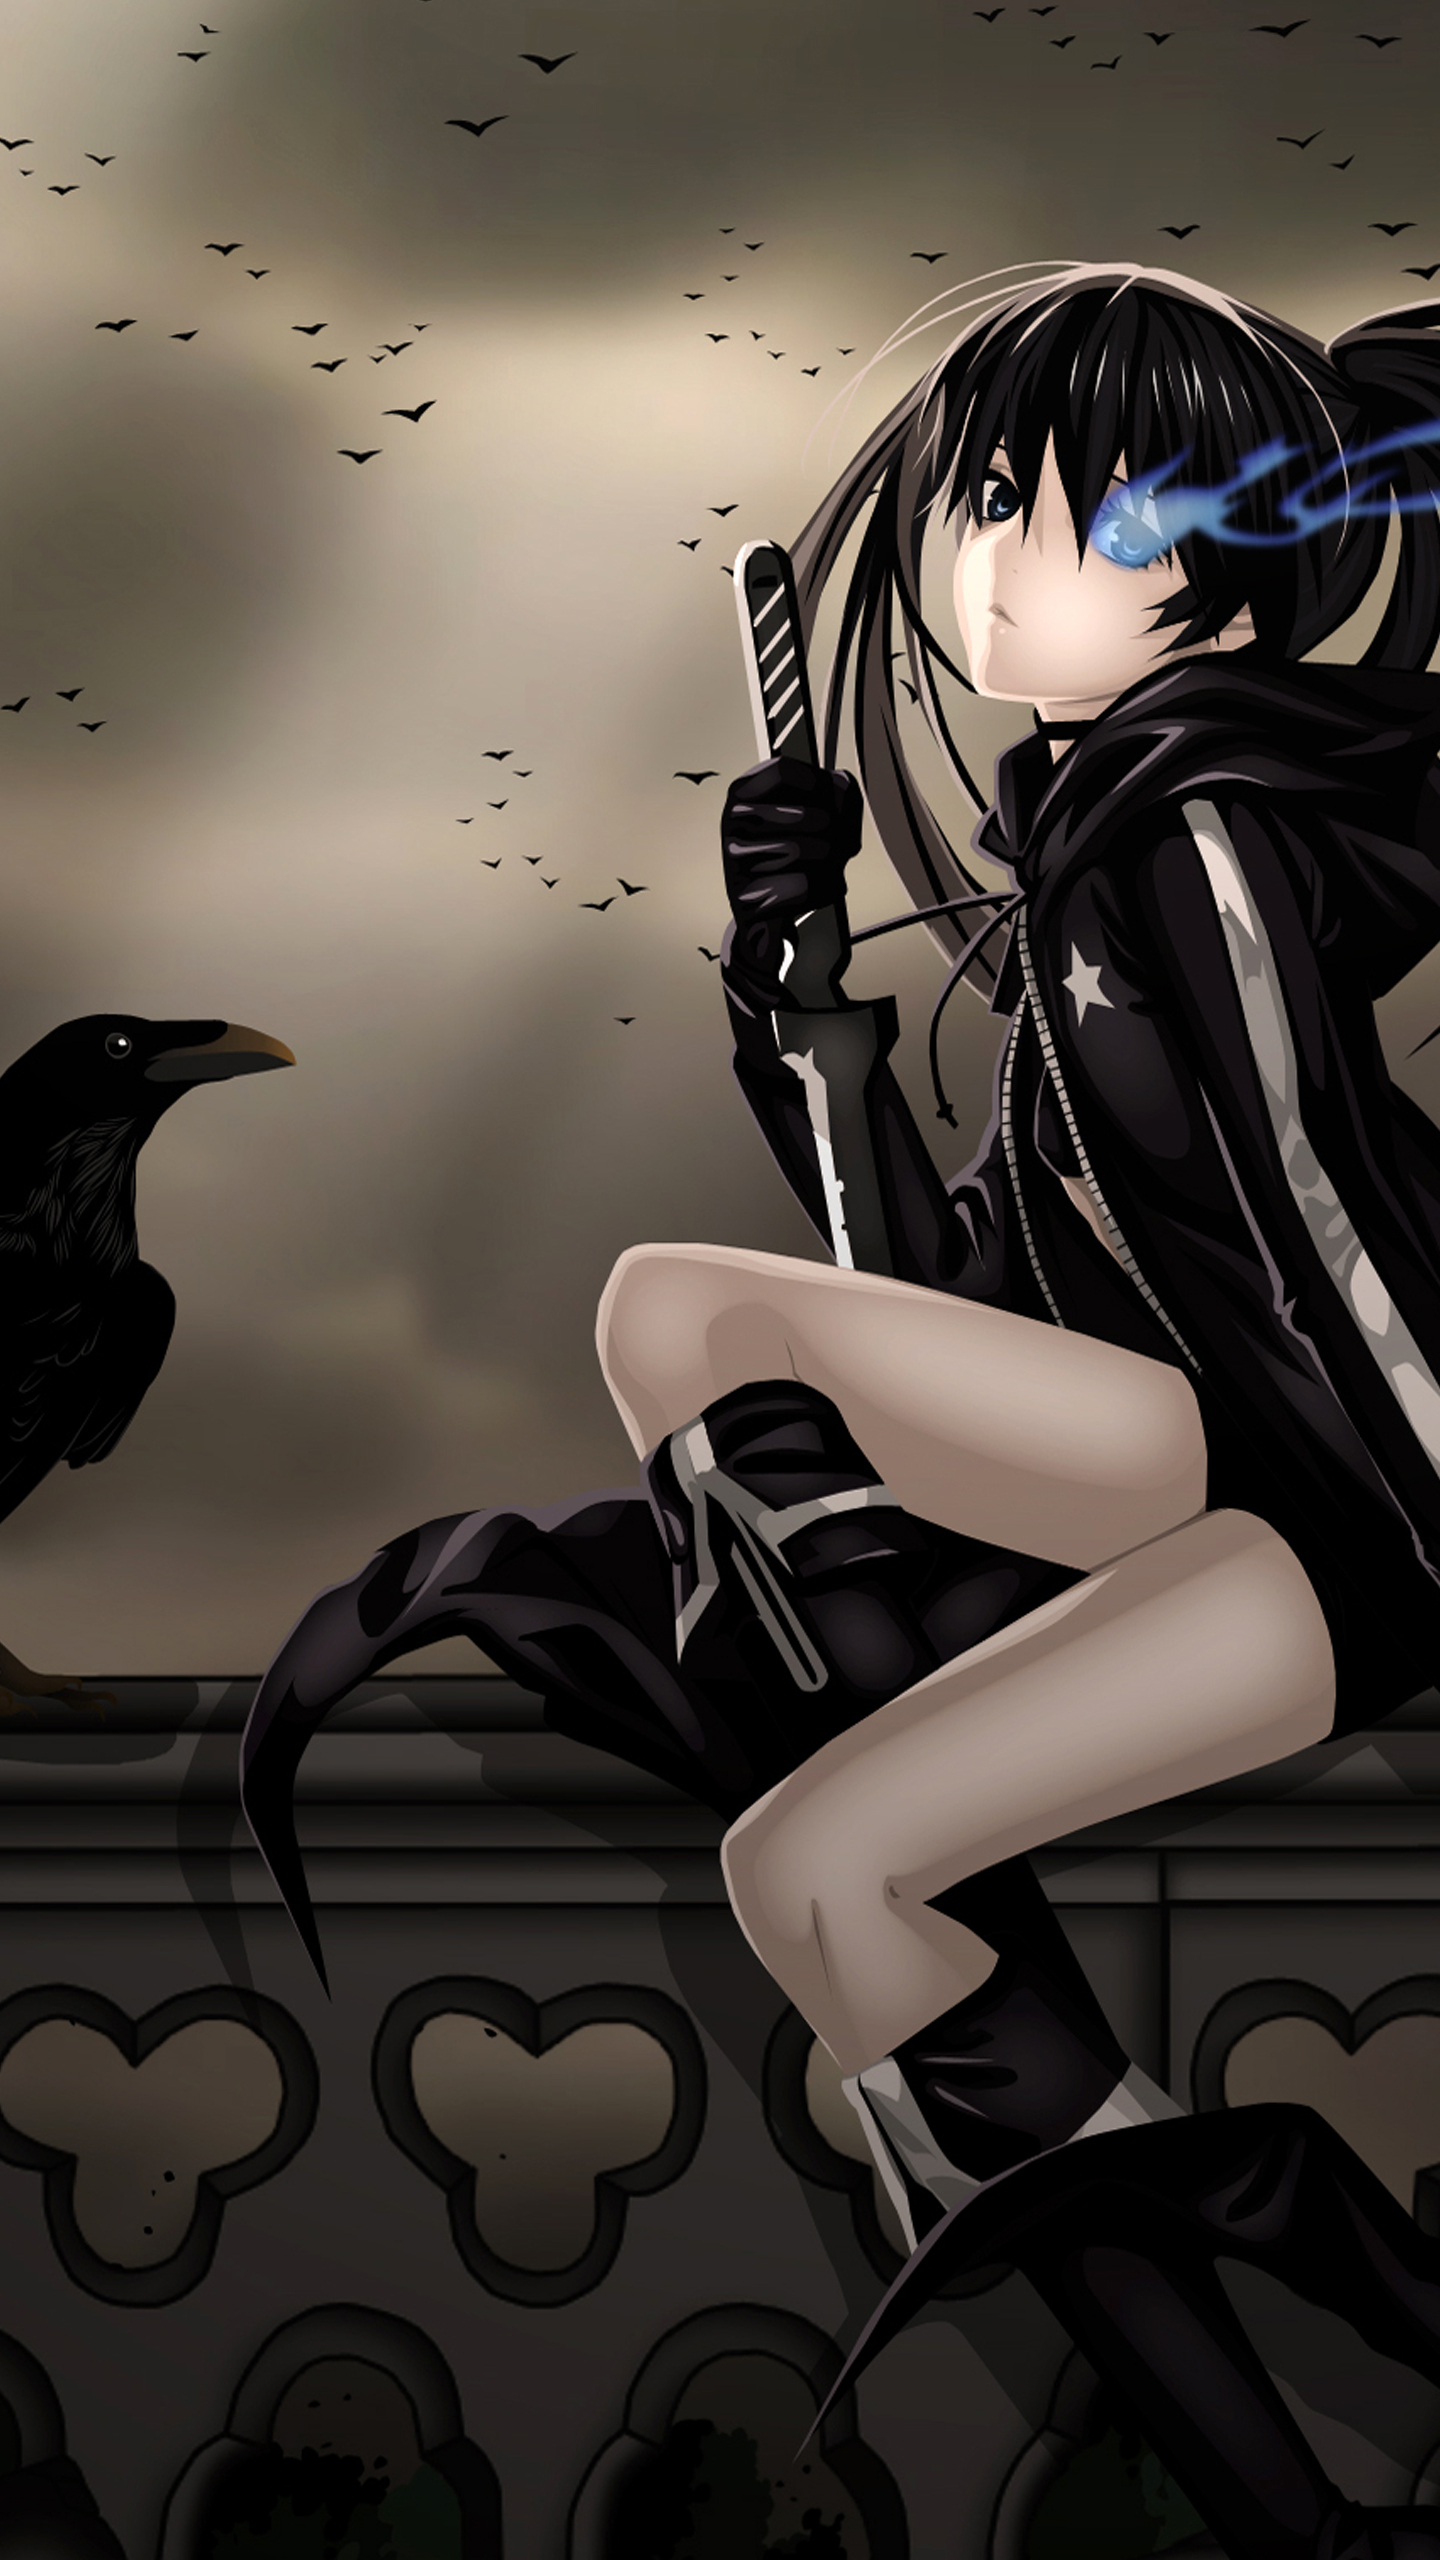 Resolution 1440x2560 Wallpapers Raven girl Android Wallpapers 1440x2560